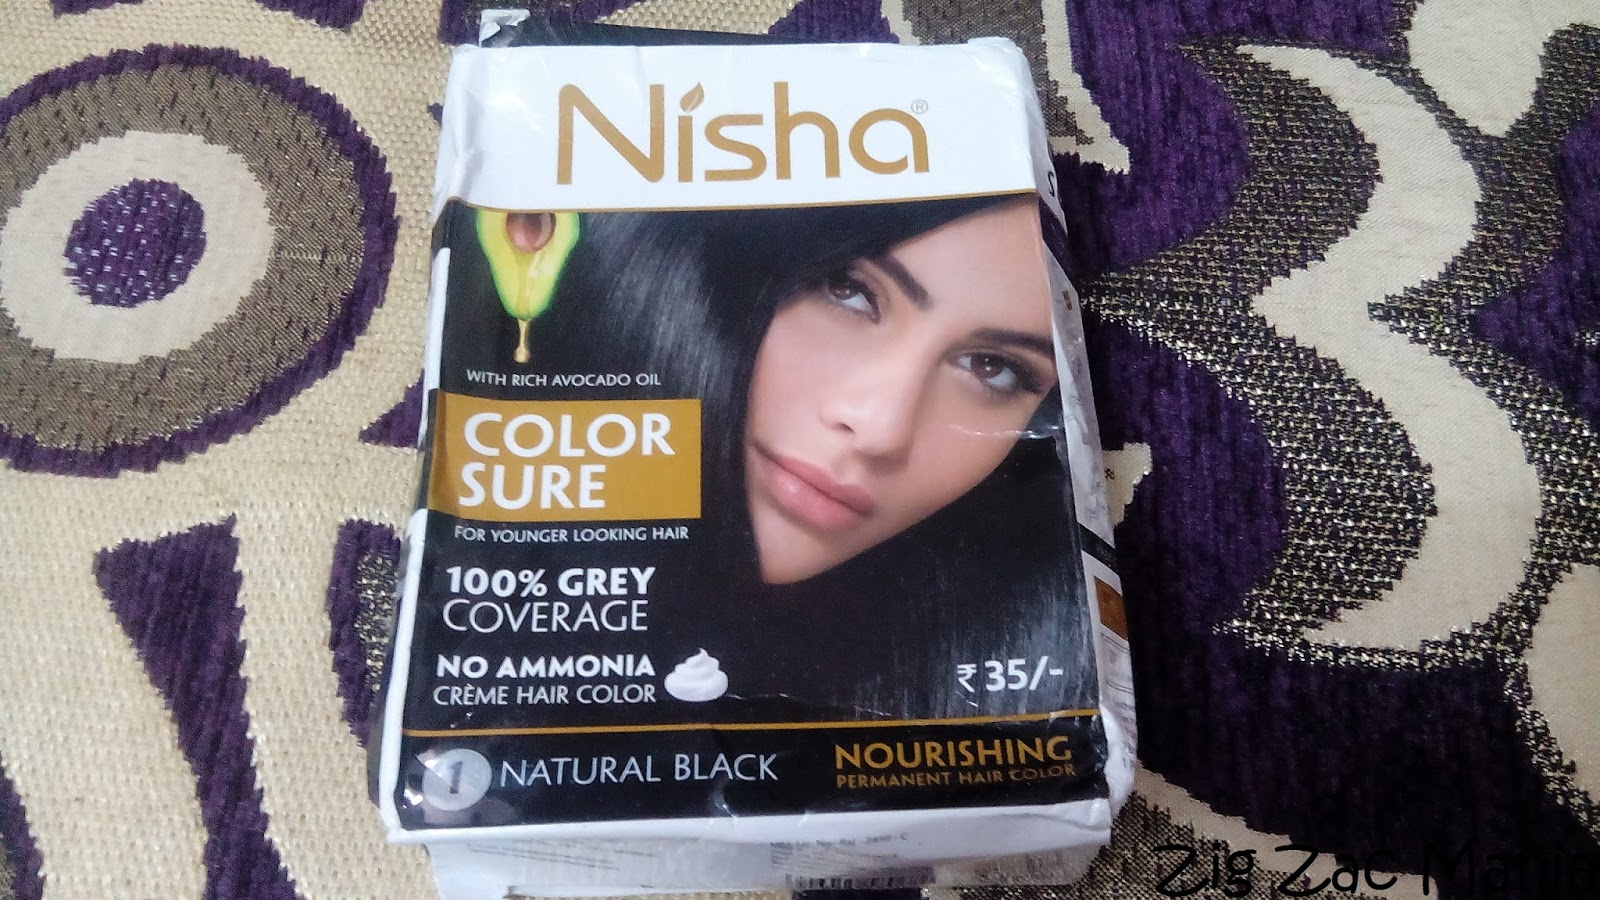 Nisha Color Sure Natural Black 01 Hair Color Review Zig Zac Mania